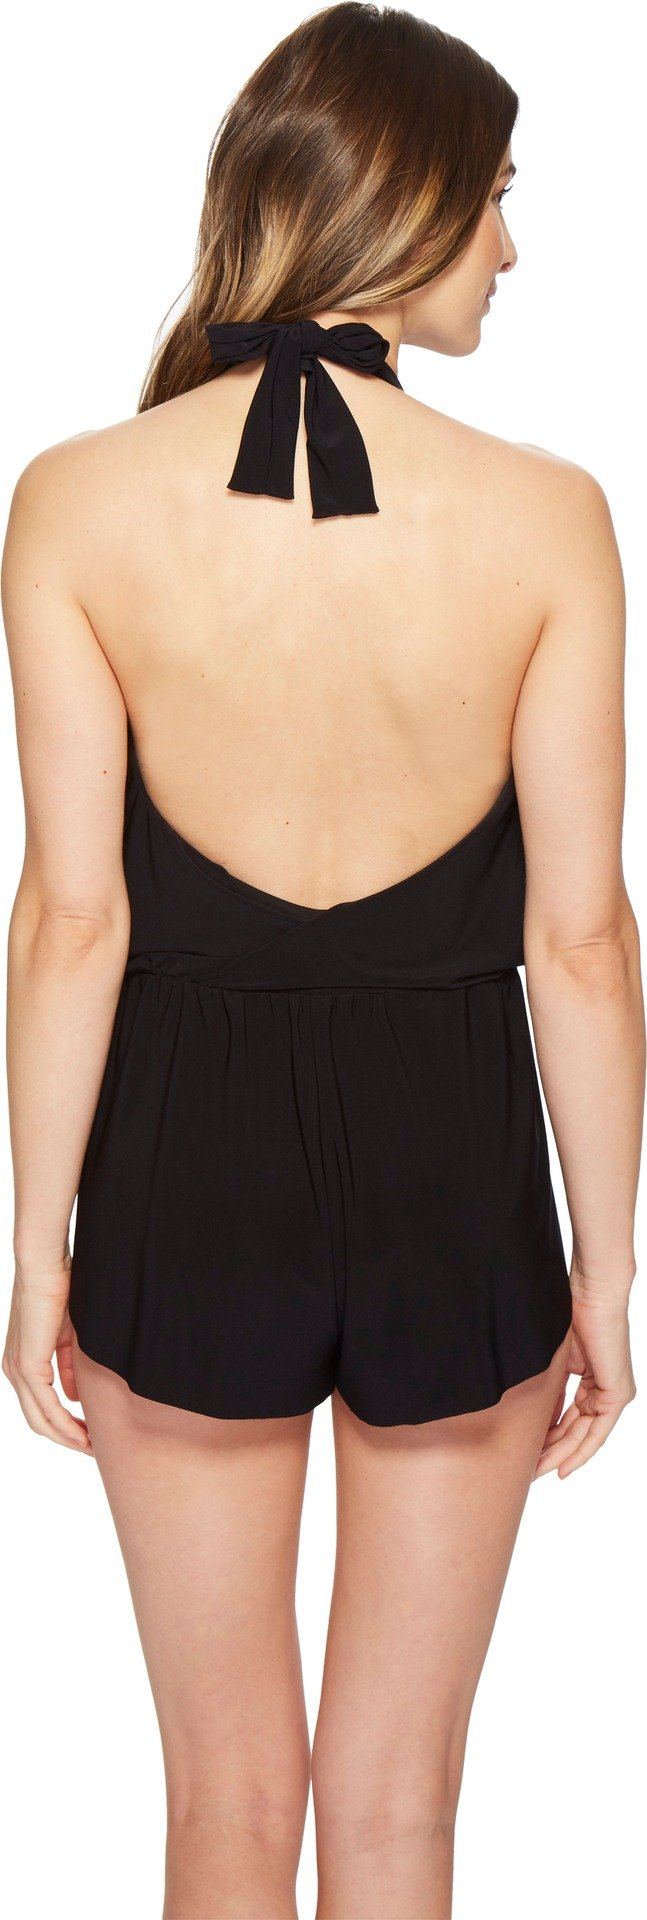 Magicsuit Women's Bianca One Piece Halter Swim Romper Swimsuit Black 8 by Magic Suit (Image #2)